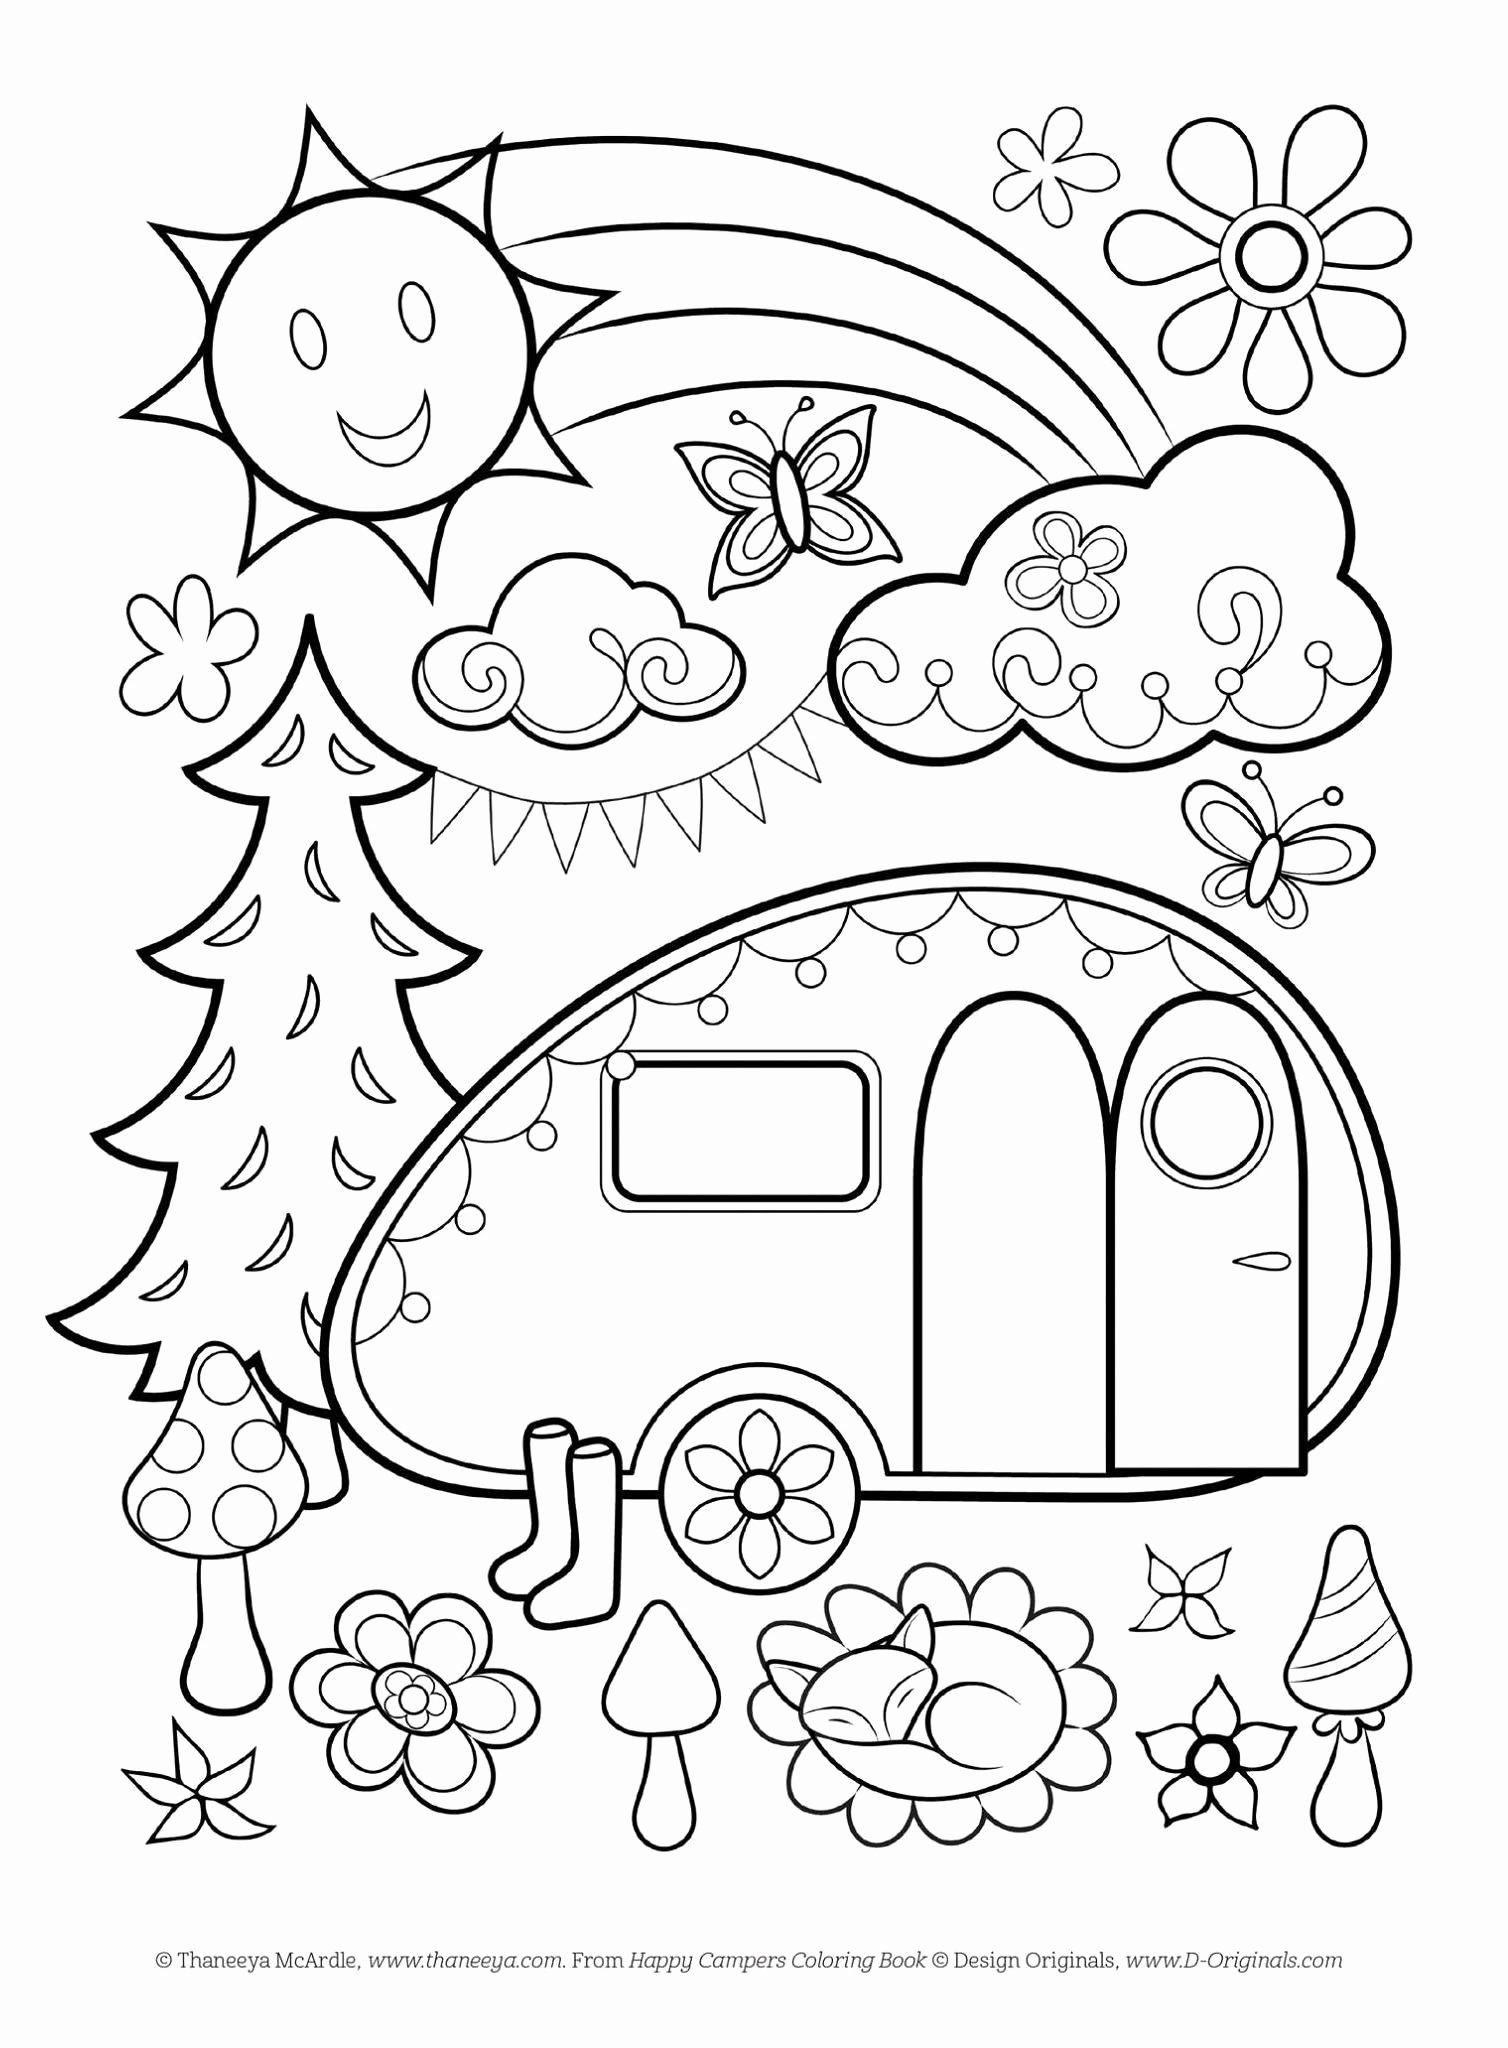 Transport Coloring Sheets Beautiful Elephant Coloring Pages Color For Free Beautiful Cool Page Camping Coloring Pages Summer Coloring Pages Free Coloring Pages